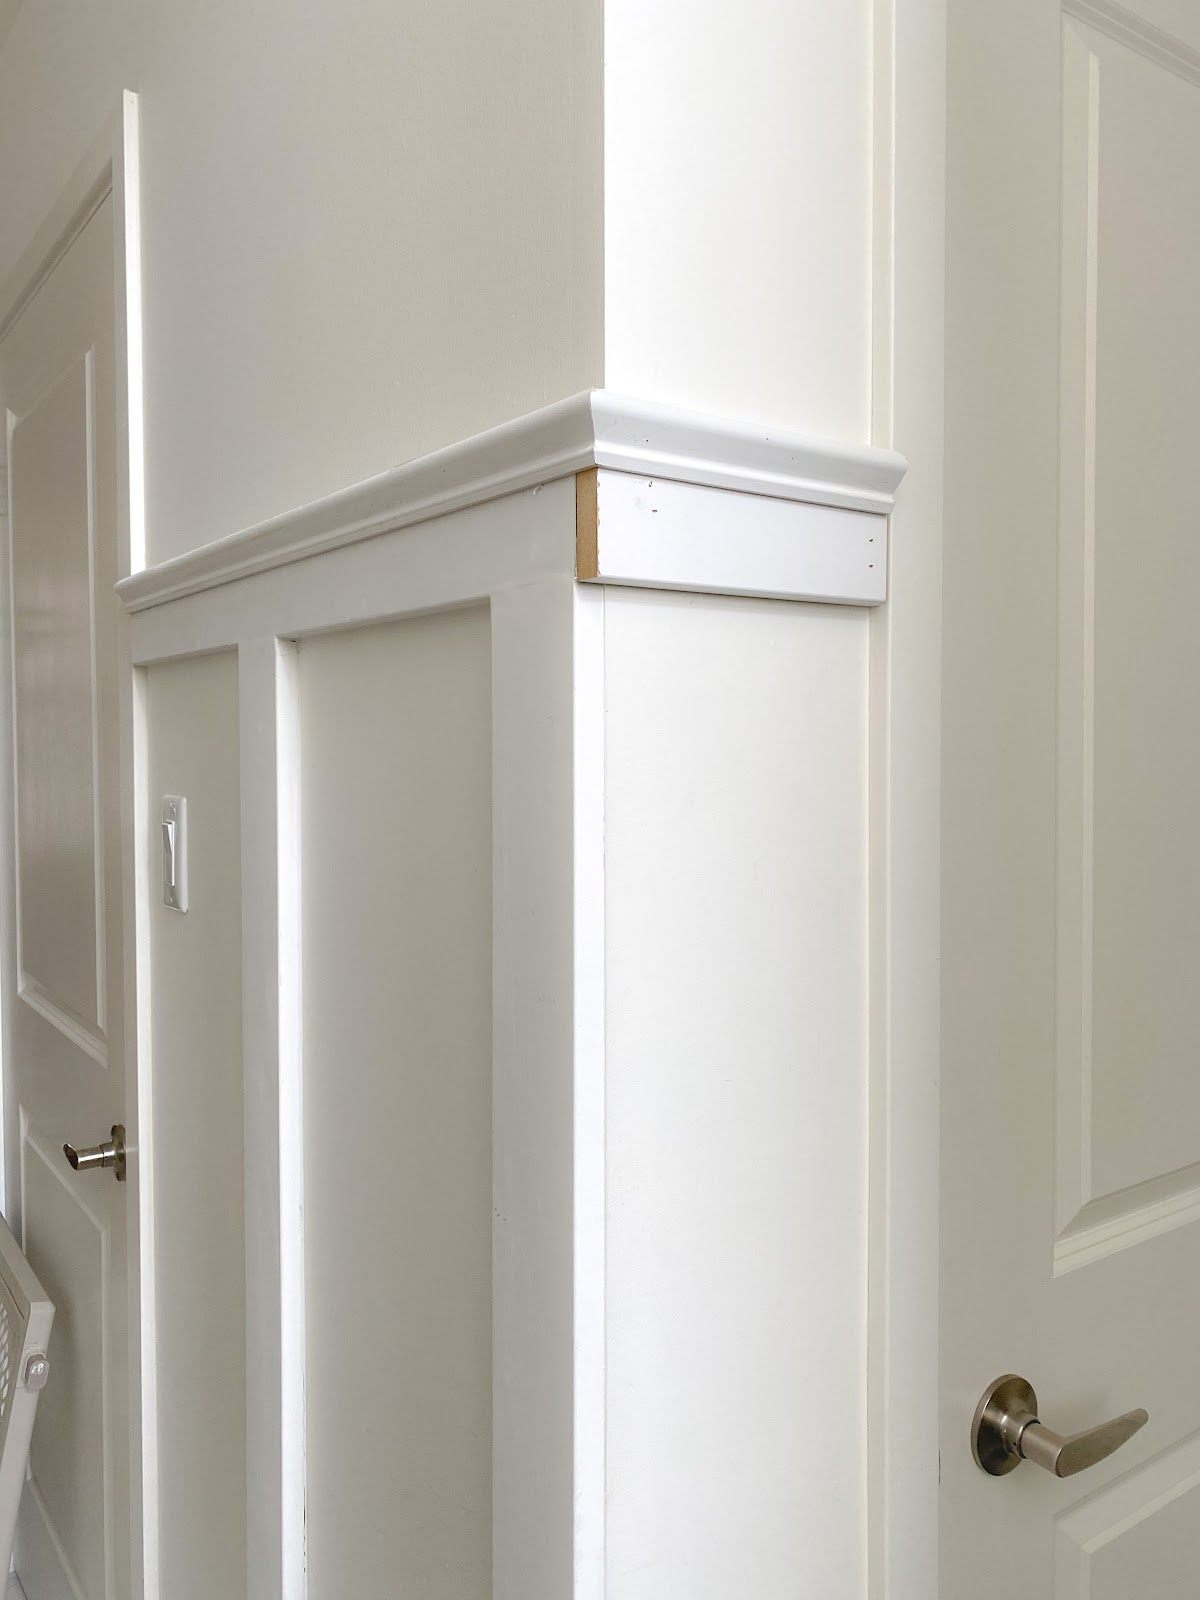 These corner cuts for board and batten give it the professional finish